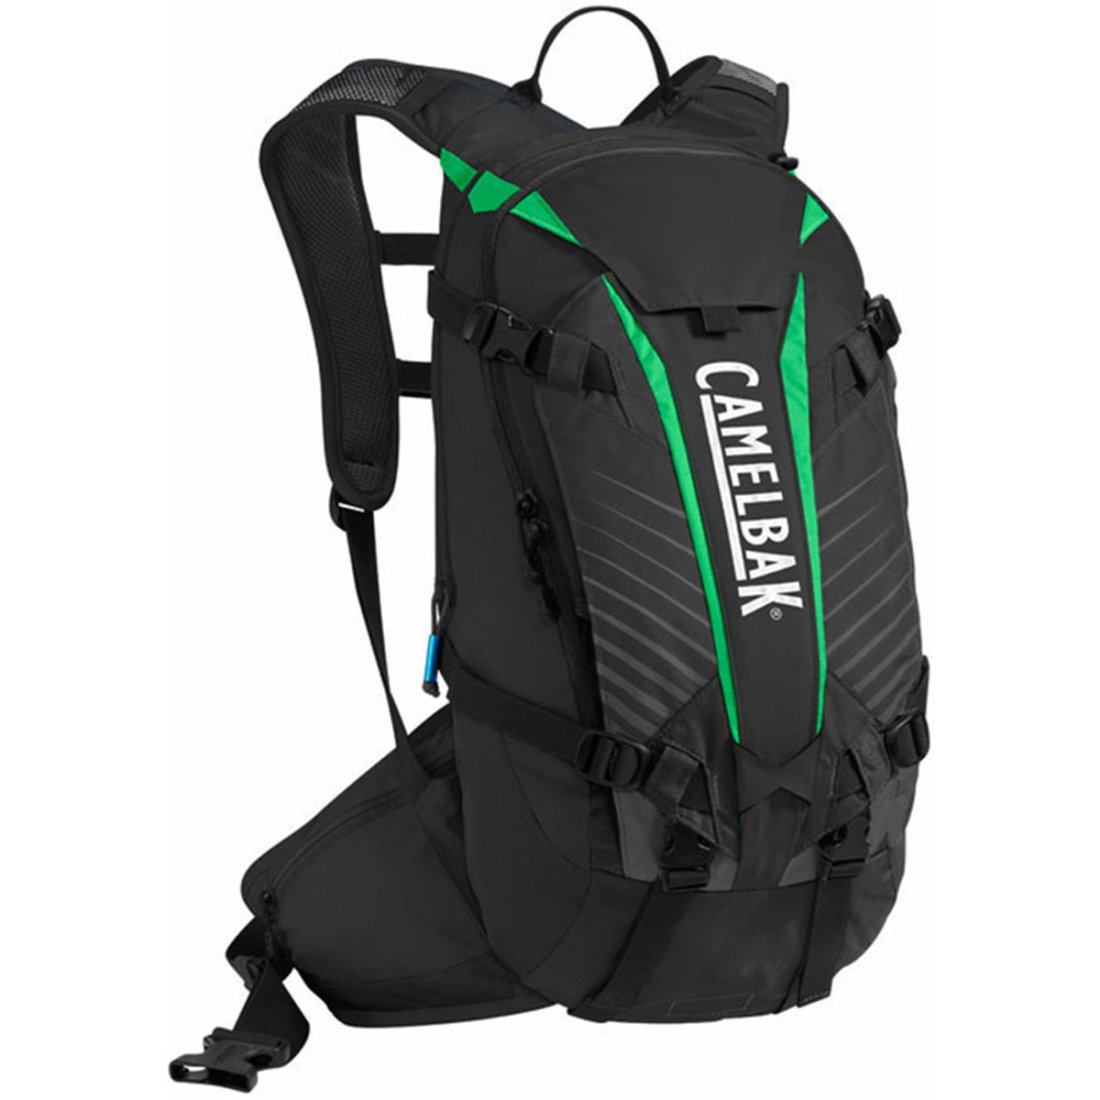 available performance sportswear exclusive shoes CAMELBAK K.U.D.U. 12 2016 Black / Green Bag / Back pack